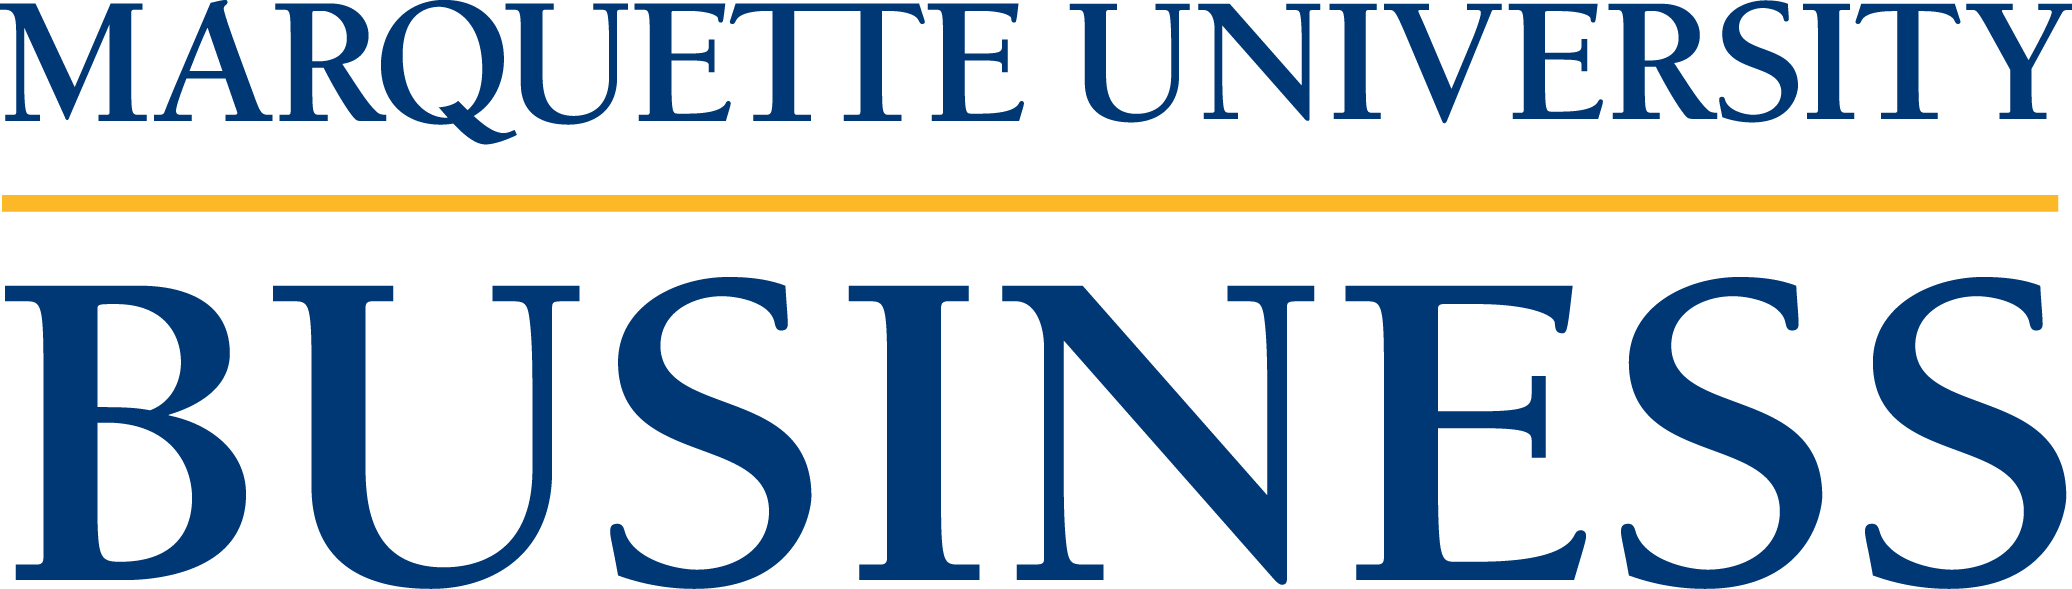 Marquette Business logo